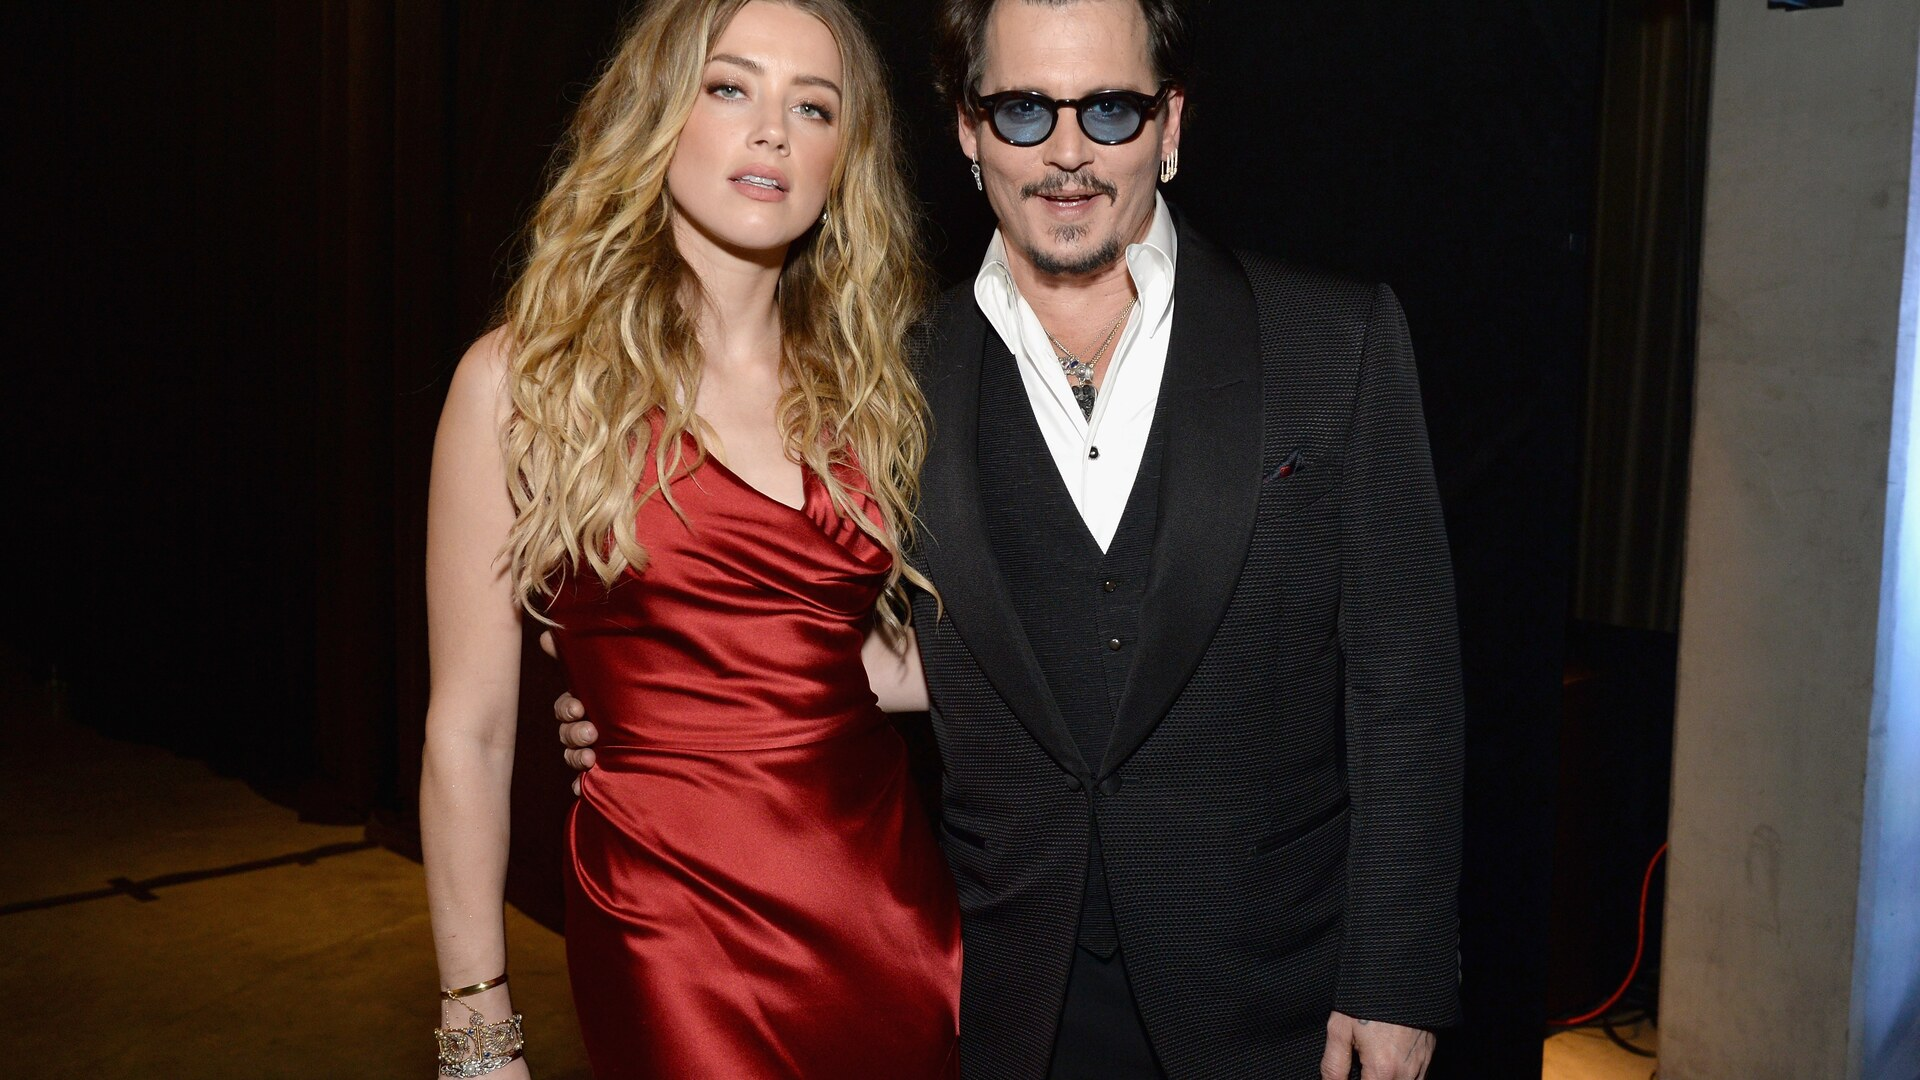 1920x1080 Johnny Depp And Amber Heard Laptop Full Hd 1080p Hd 4k